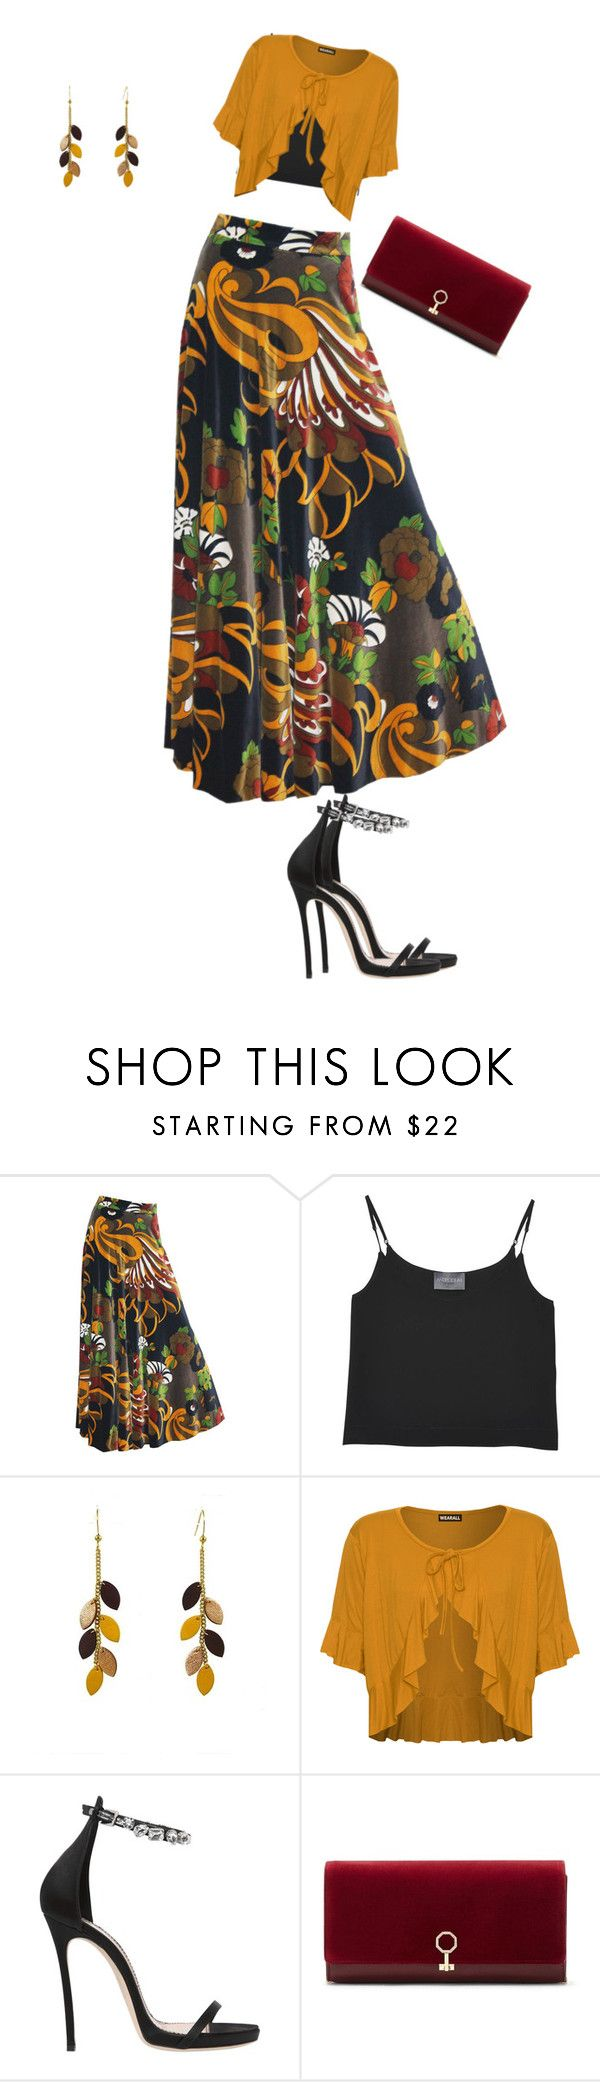 """Untitled #5556"" by browneyegurl ❤ liked on Polyvore featuring Gina Fratini, Antipodium, Atelier Maï Martin, WearAll, Dsquared2 and Louise et Cie"